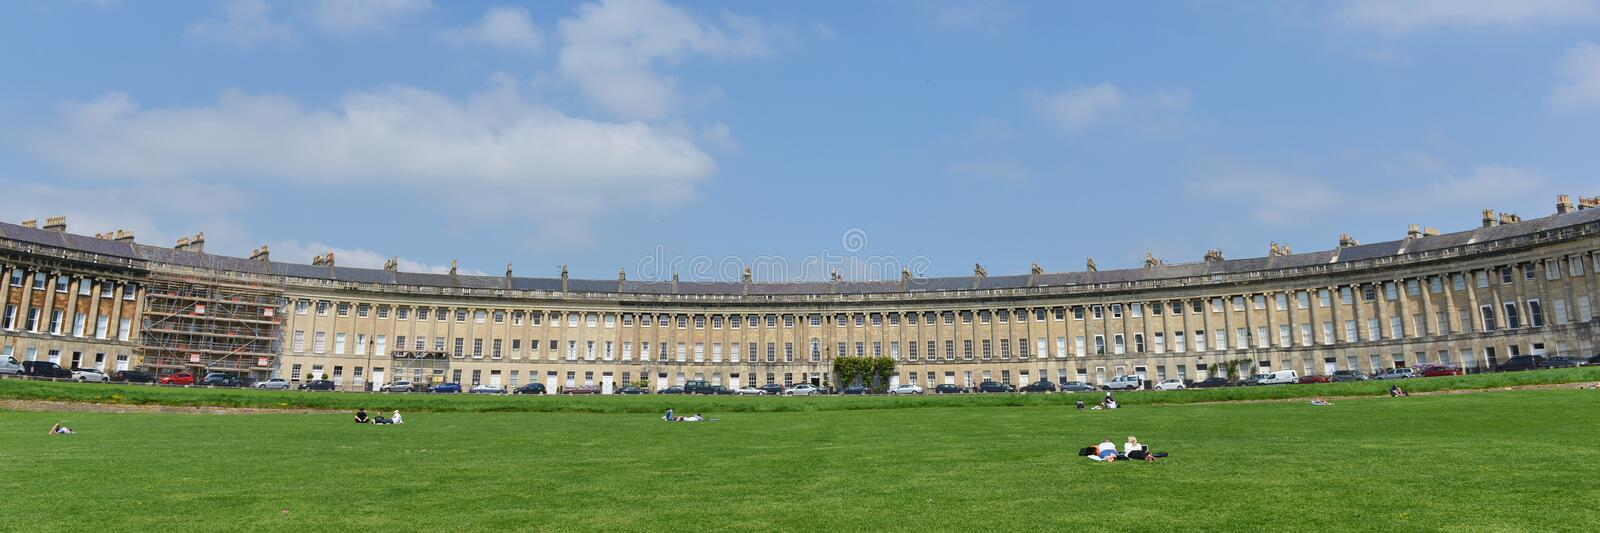 Panoramic View of the Royal Crescent and Victoria Park in Bath England stock images